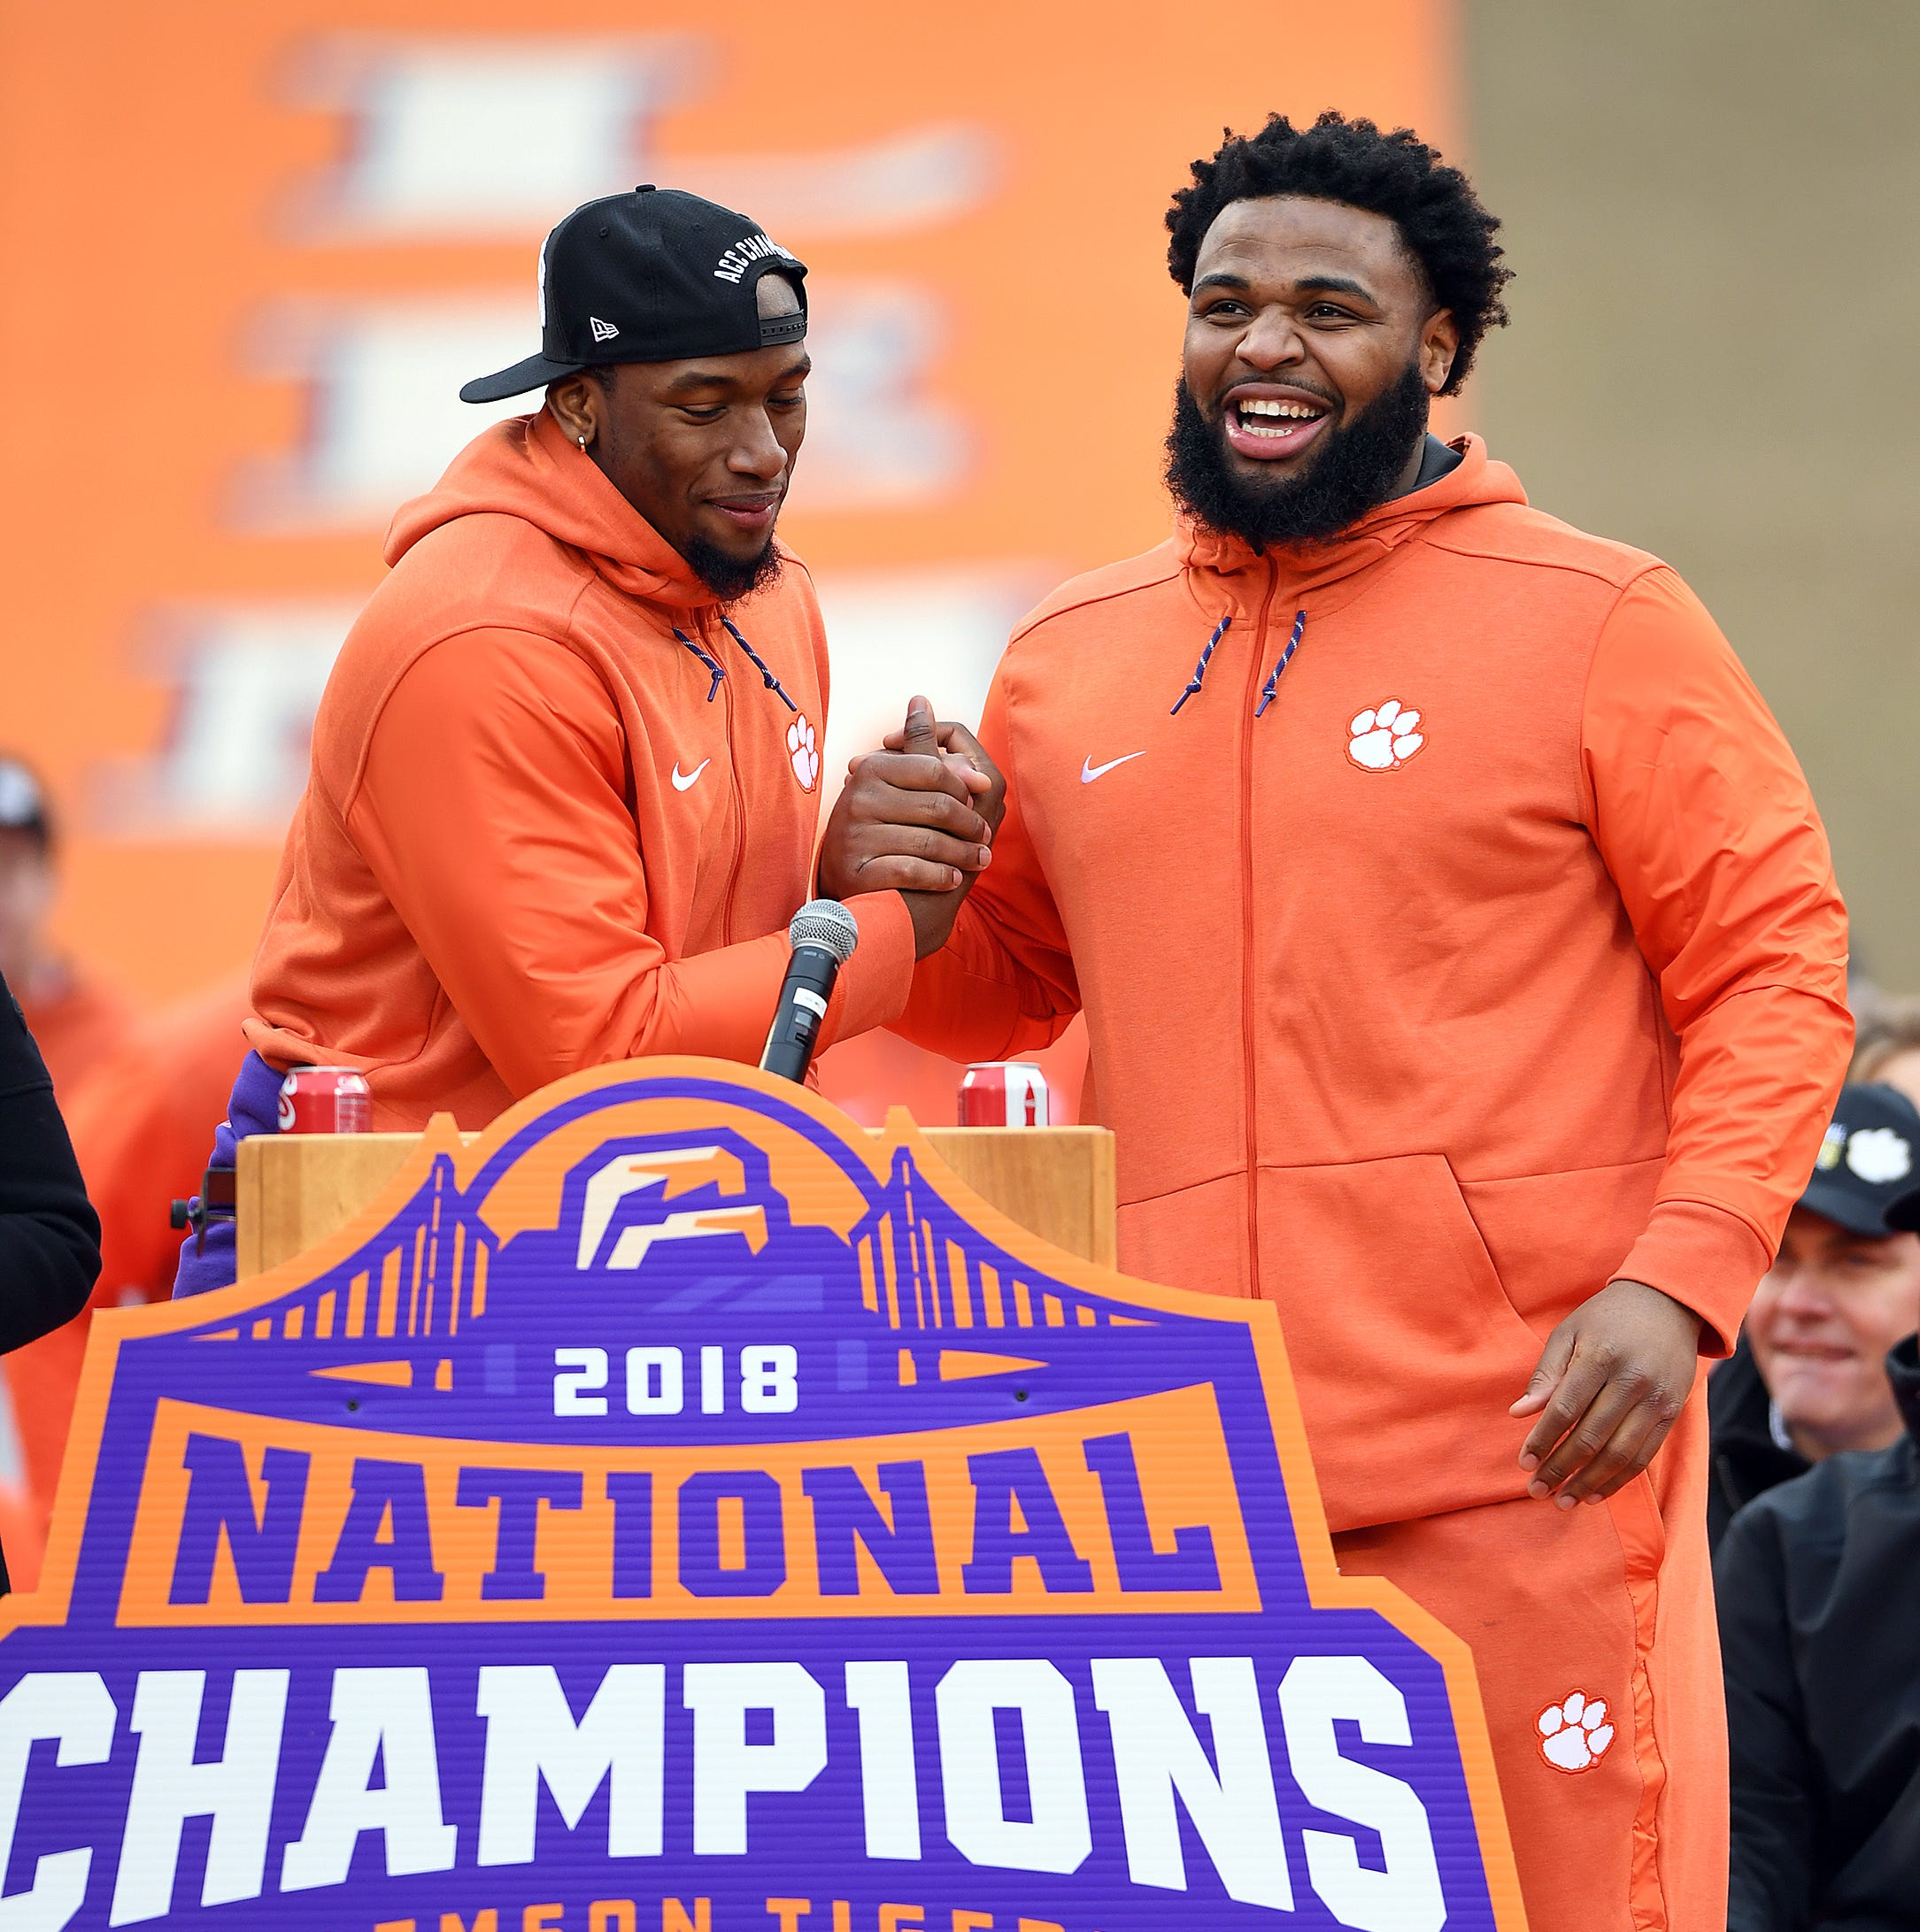 NFL mock draft 2019: Surprises for Clelin Ferrell, Christian Wilkins in first round?